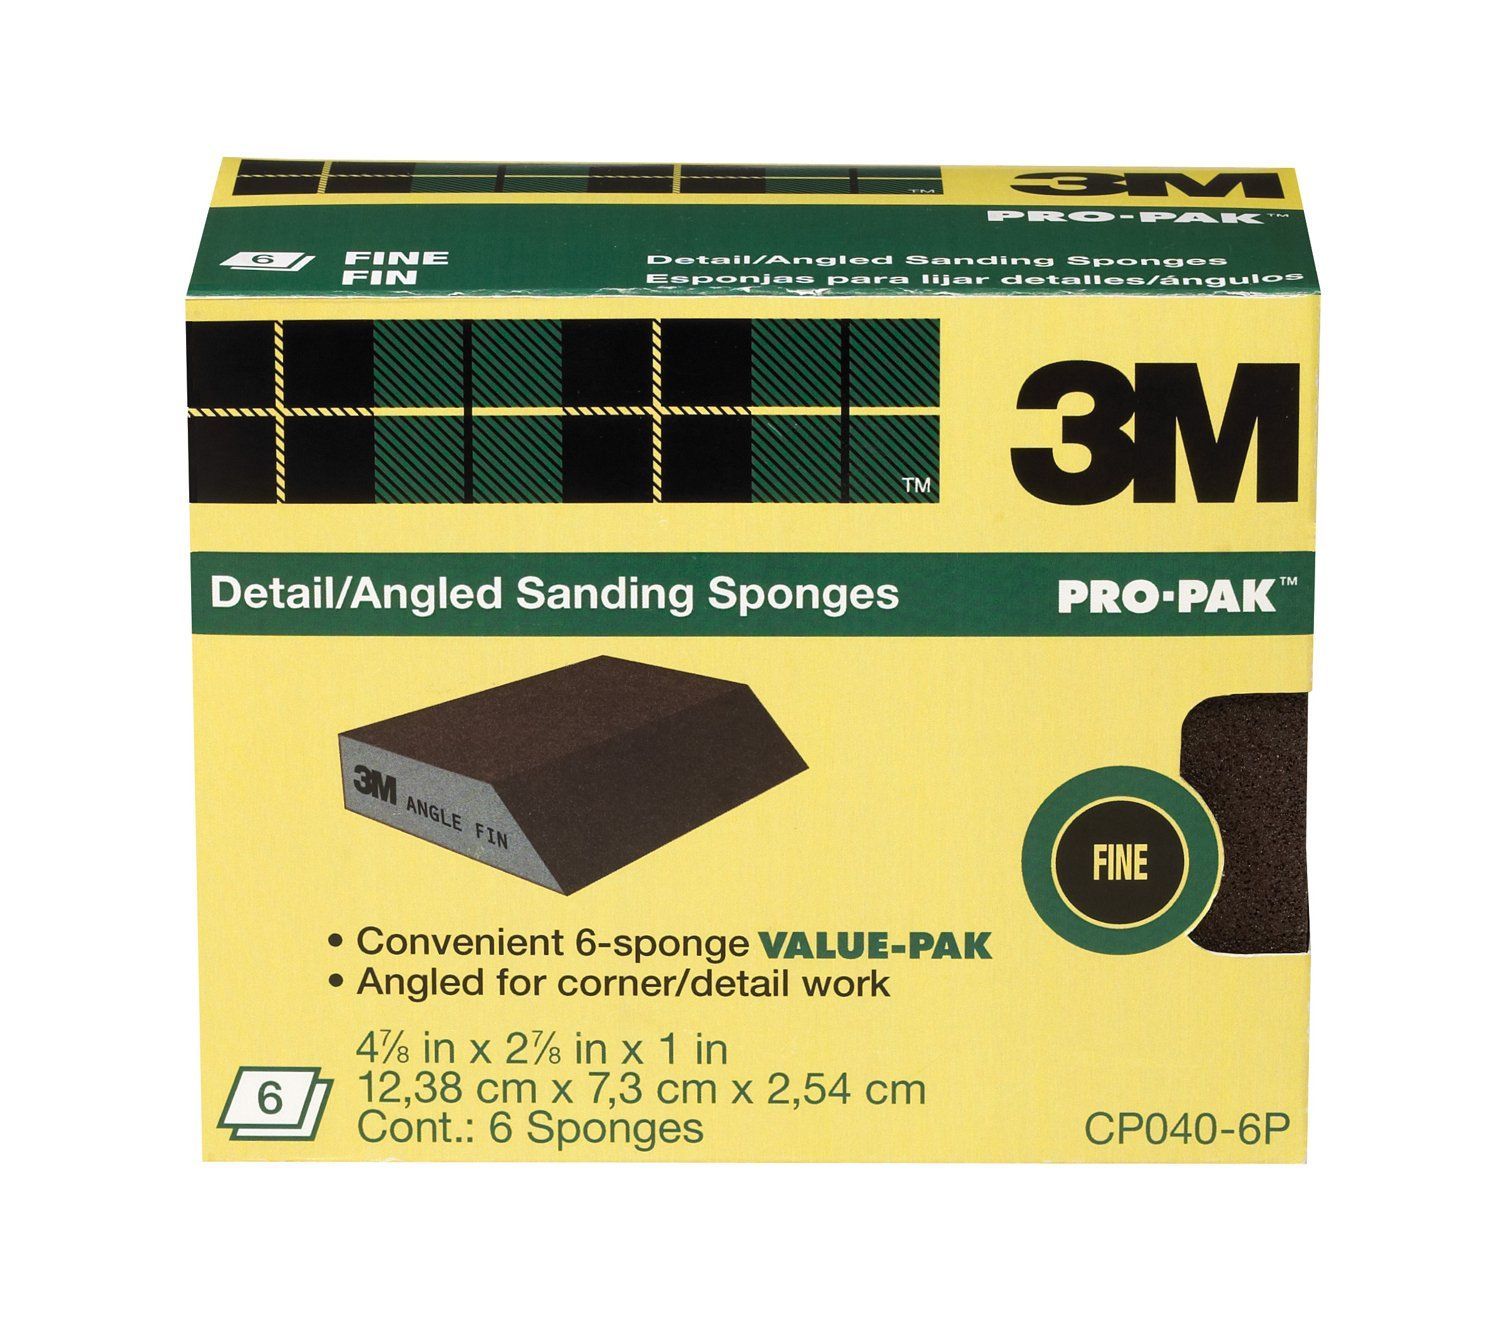 3M Angle Sanding Sponge, 2.875-Inch by 4.875-Inch by 1-Inch by 3M